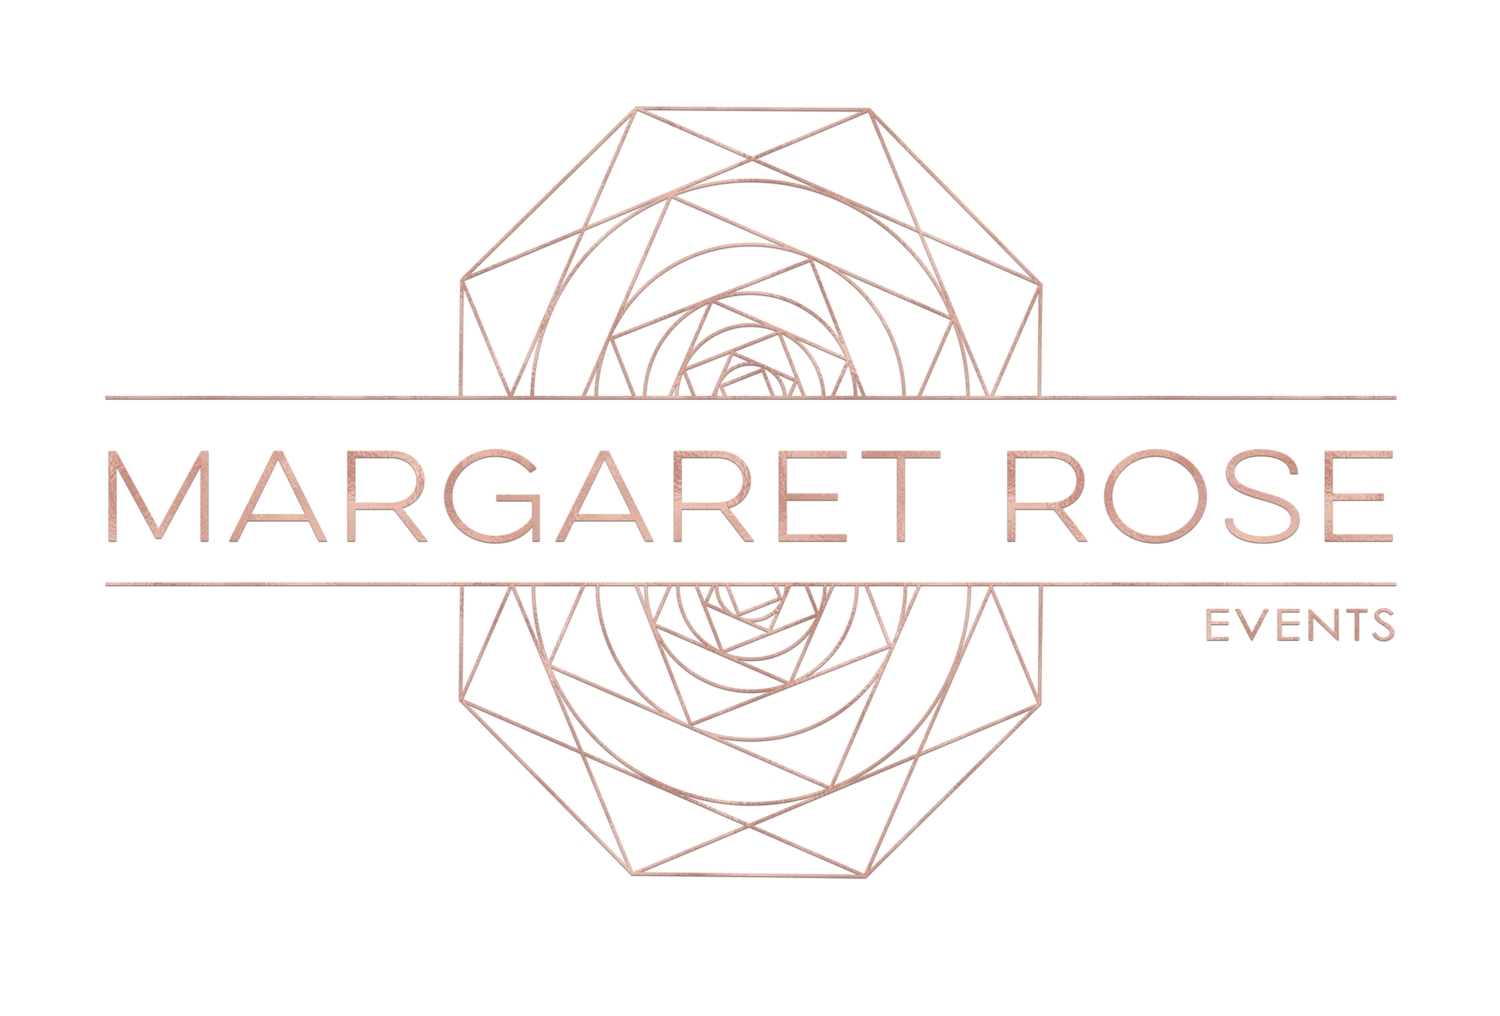 Margaret Rose Events